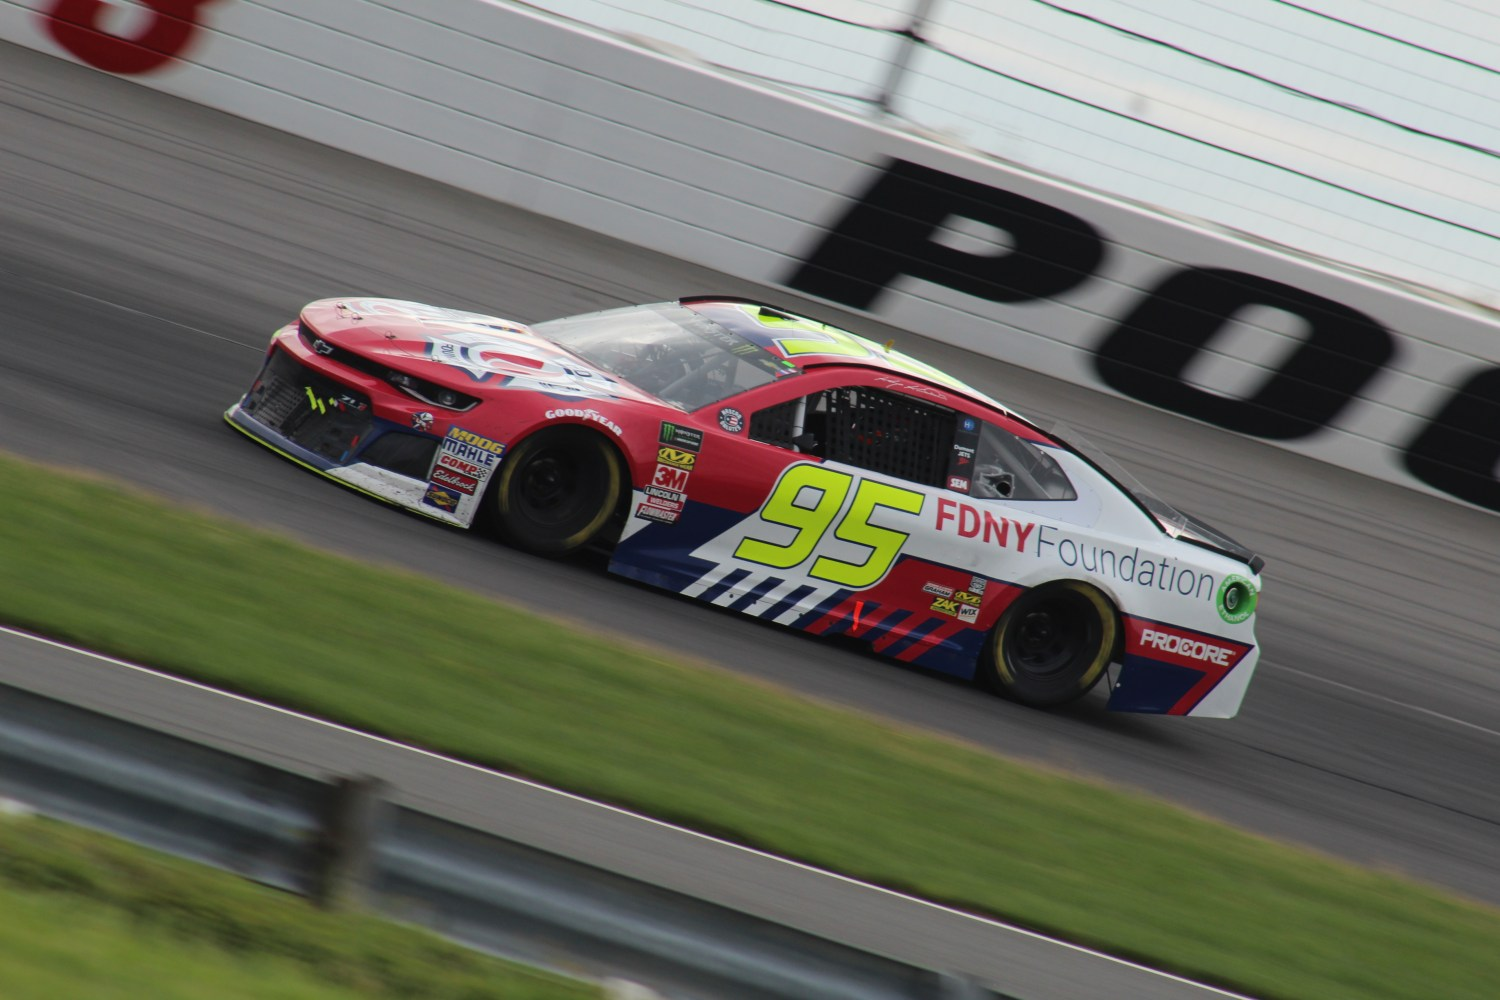 Kasey Kahne races during the 2018 Pocono 400. (Tyler Head | The Racing Experts)